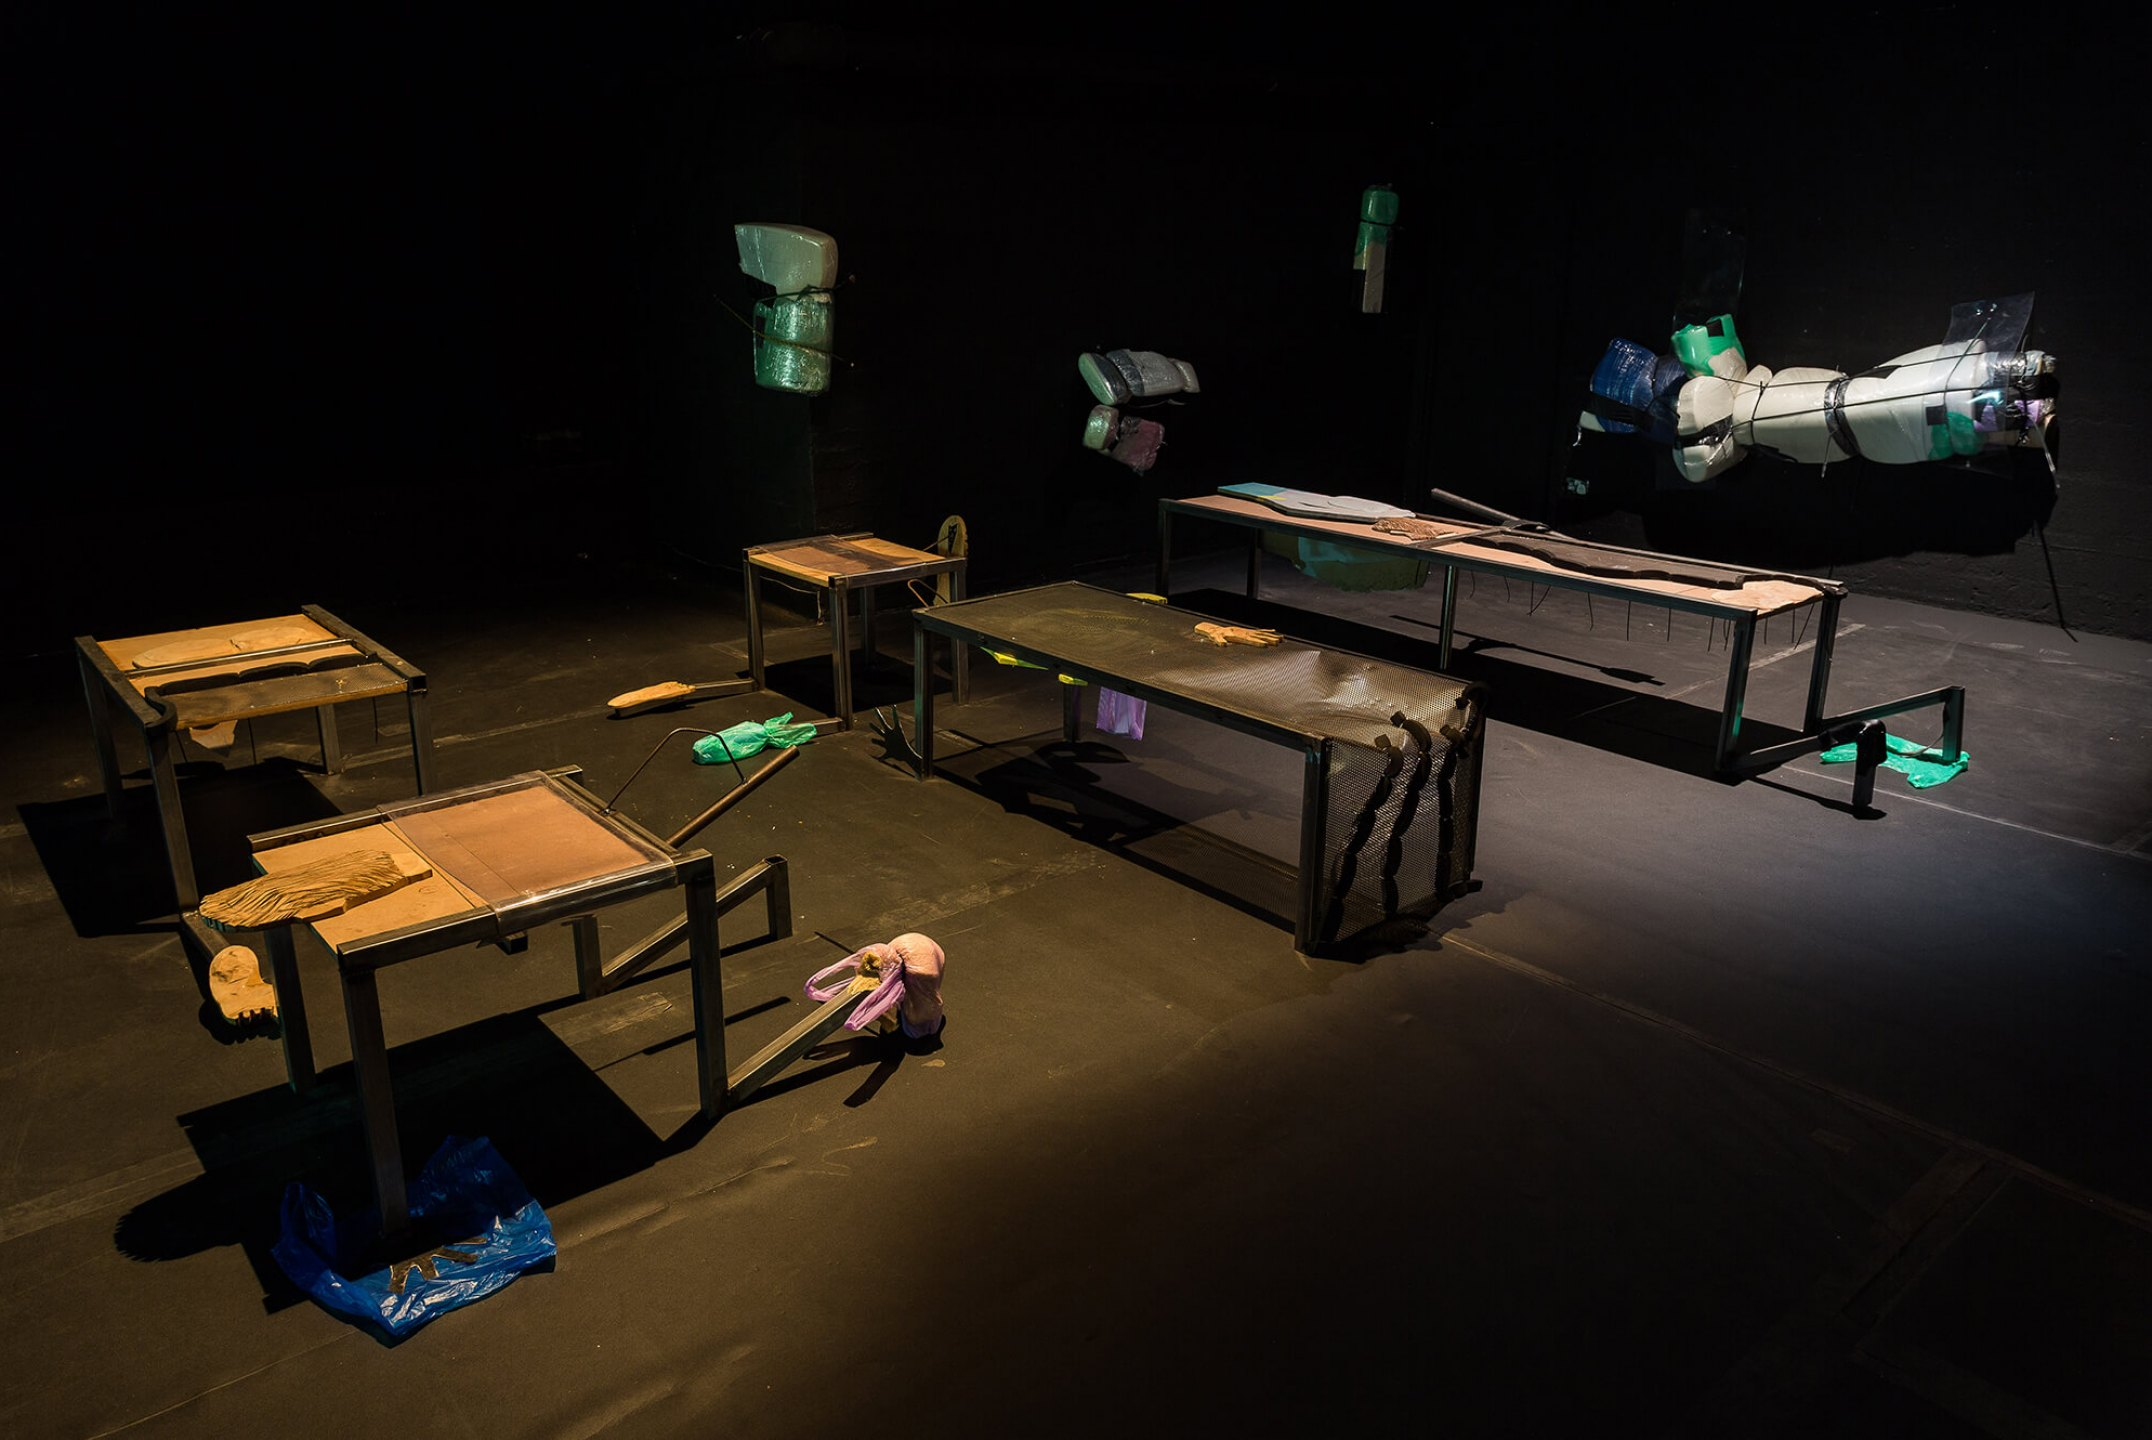 Neïl Beloufa, <em>Counting On People</em>‭, ICA‭ – The Institute of Contemporary Arts‭, ‬London‭, 2014 - Mendes Wood DM